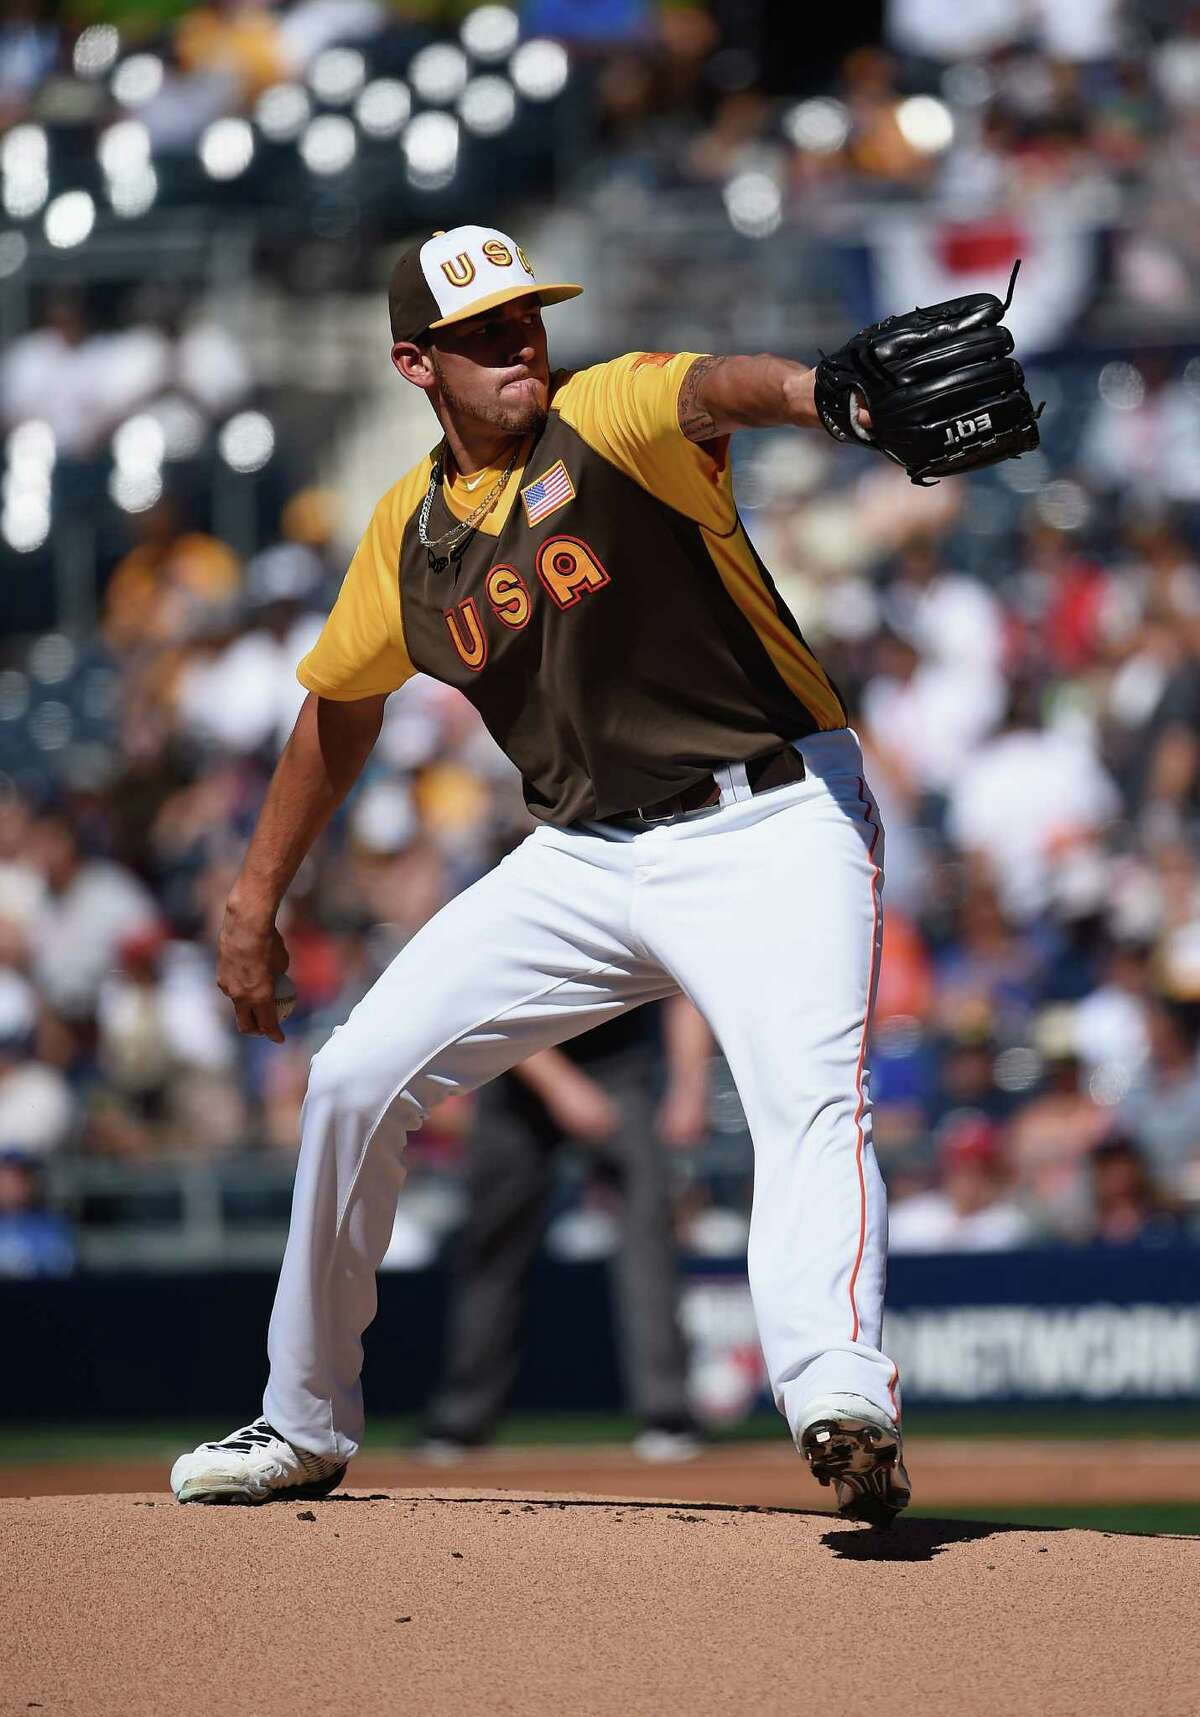 SAN DIEGO, CA - JULY 10: Joe Musgrove of the U.S. Team pitches during the SiriusXM All-Star Futures Game at PETCO Park on July 10, 2016 in San Diego, California.